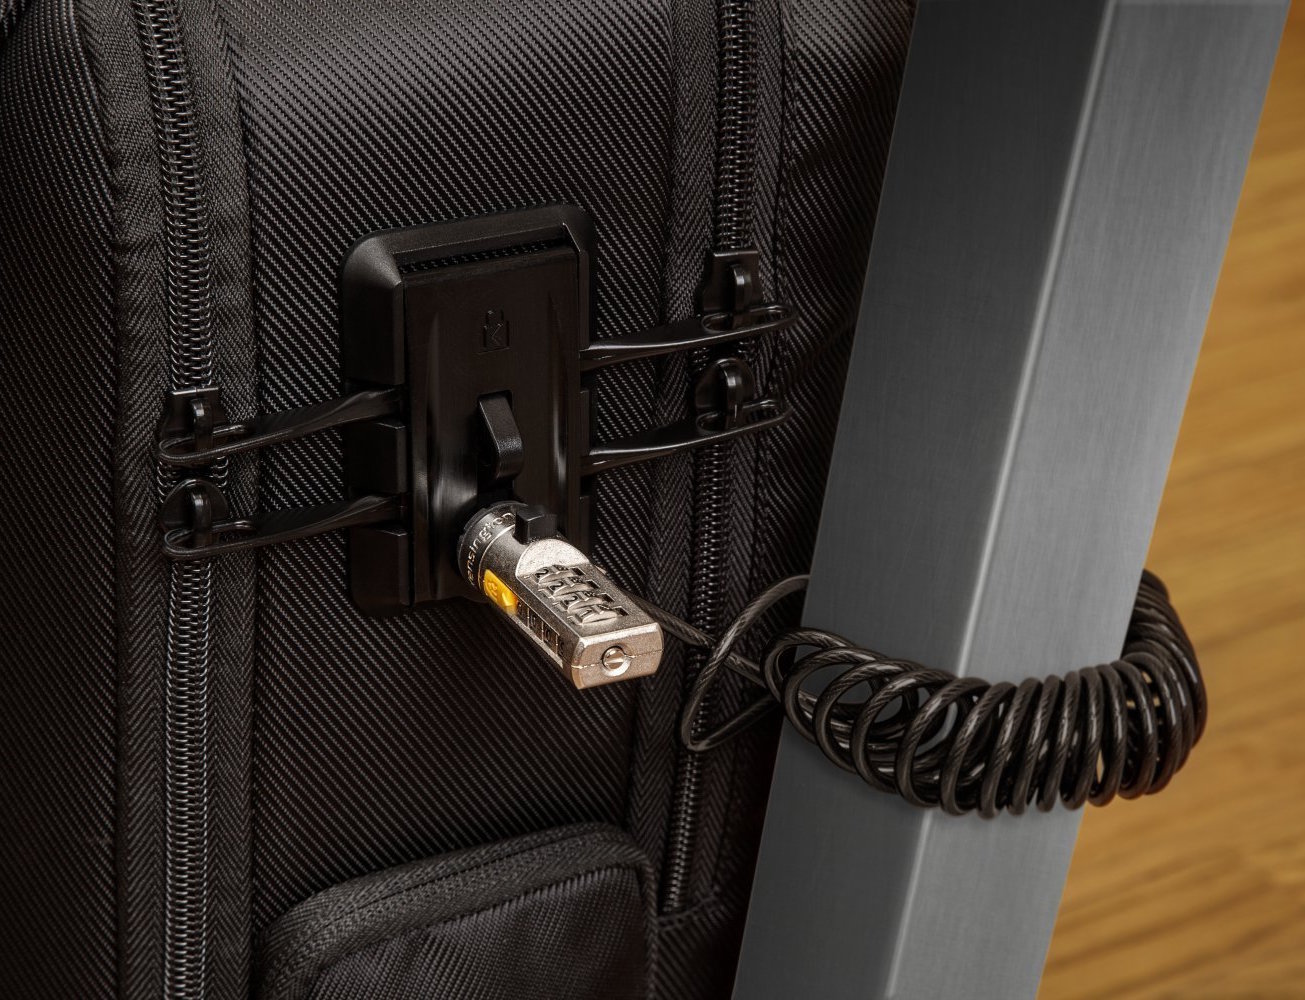 Kensington SecureTrek Bag Range for Travelers